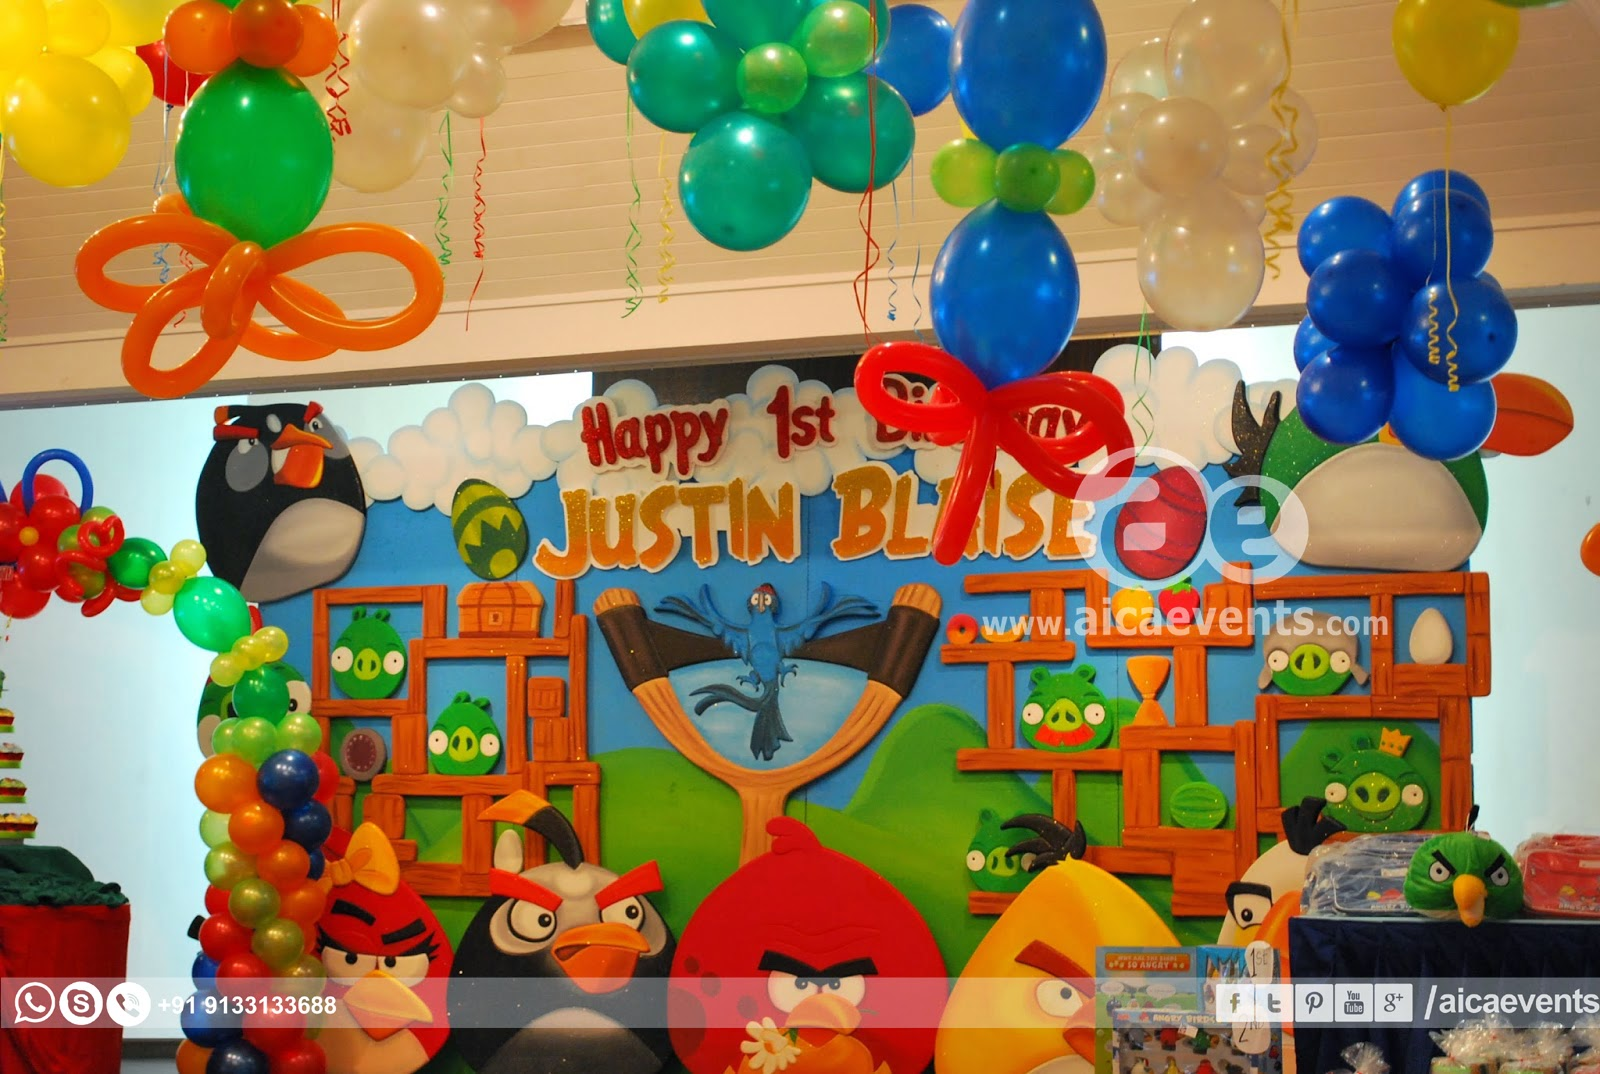 aicaevents: Angry Bird Theme Decors for Birthday parties